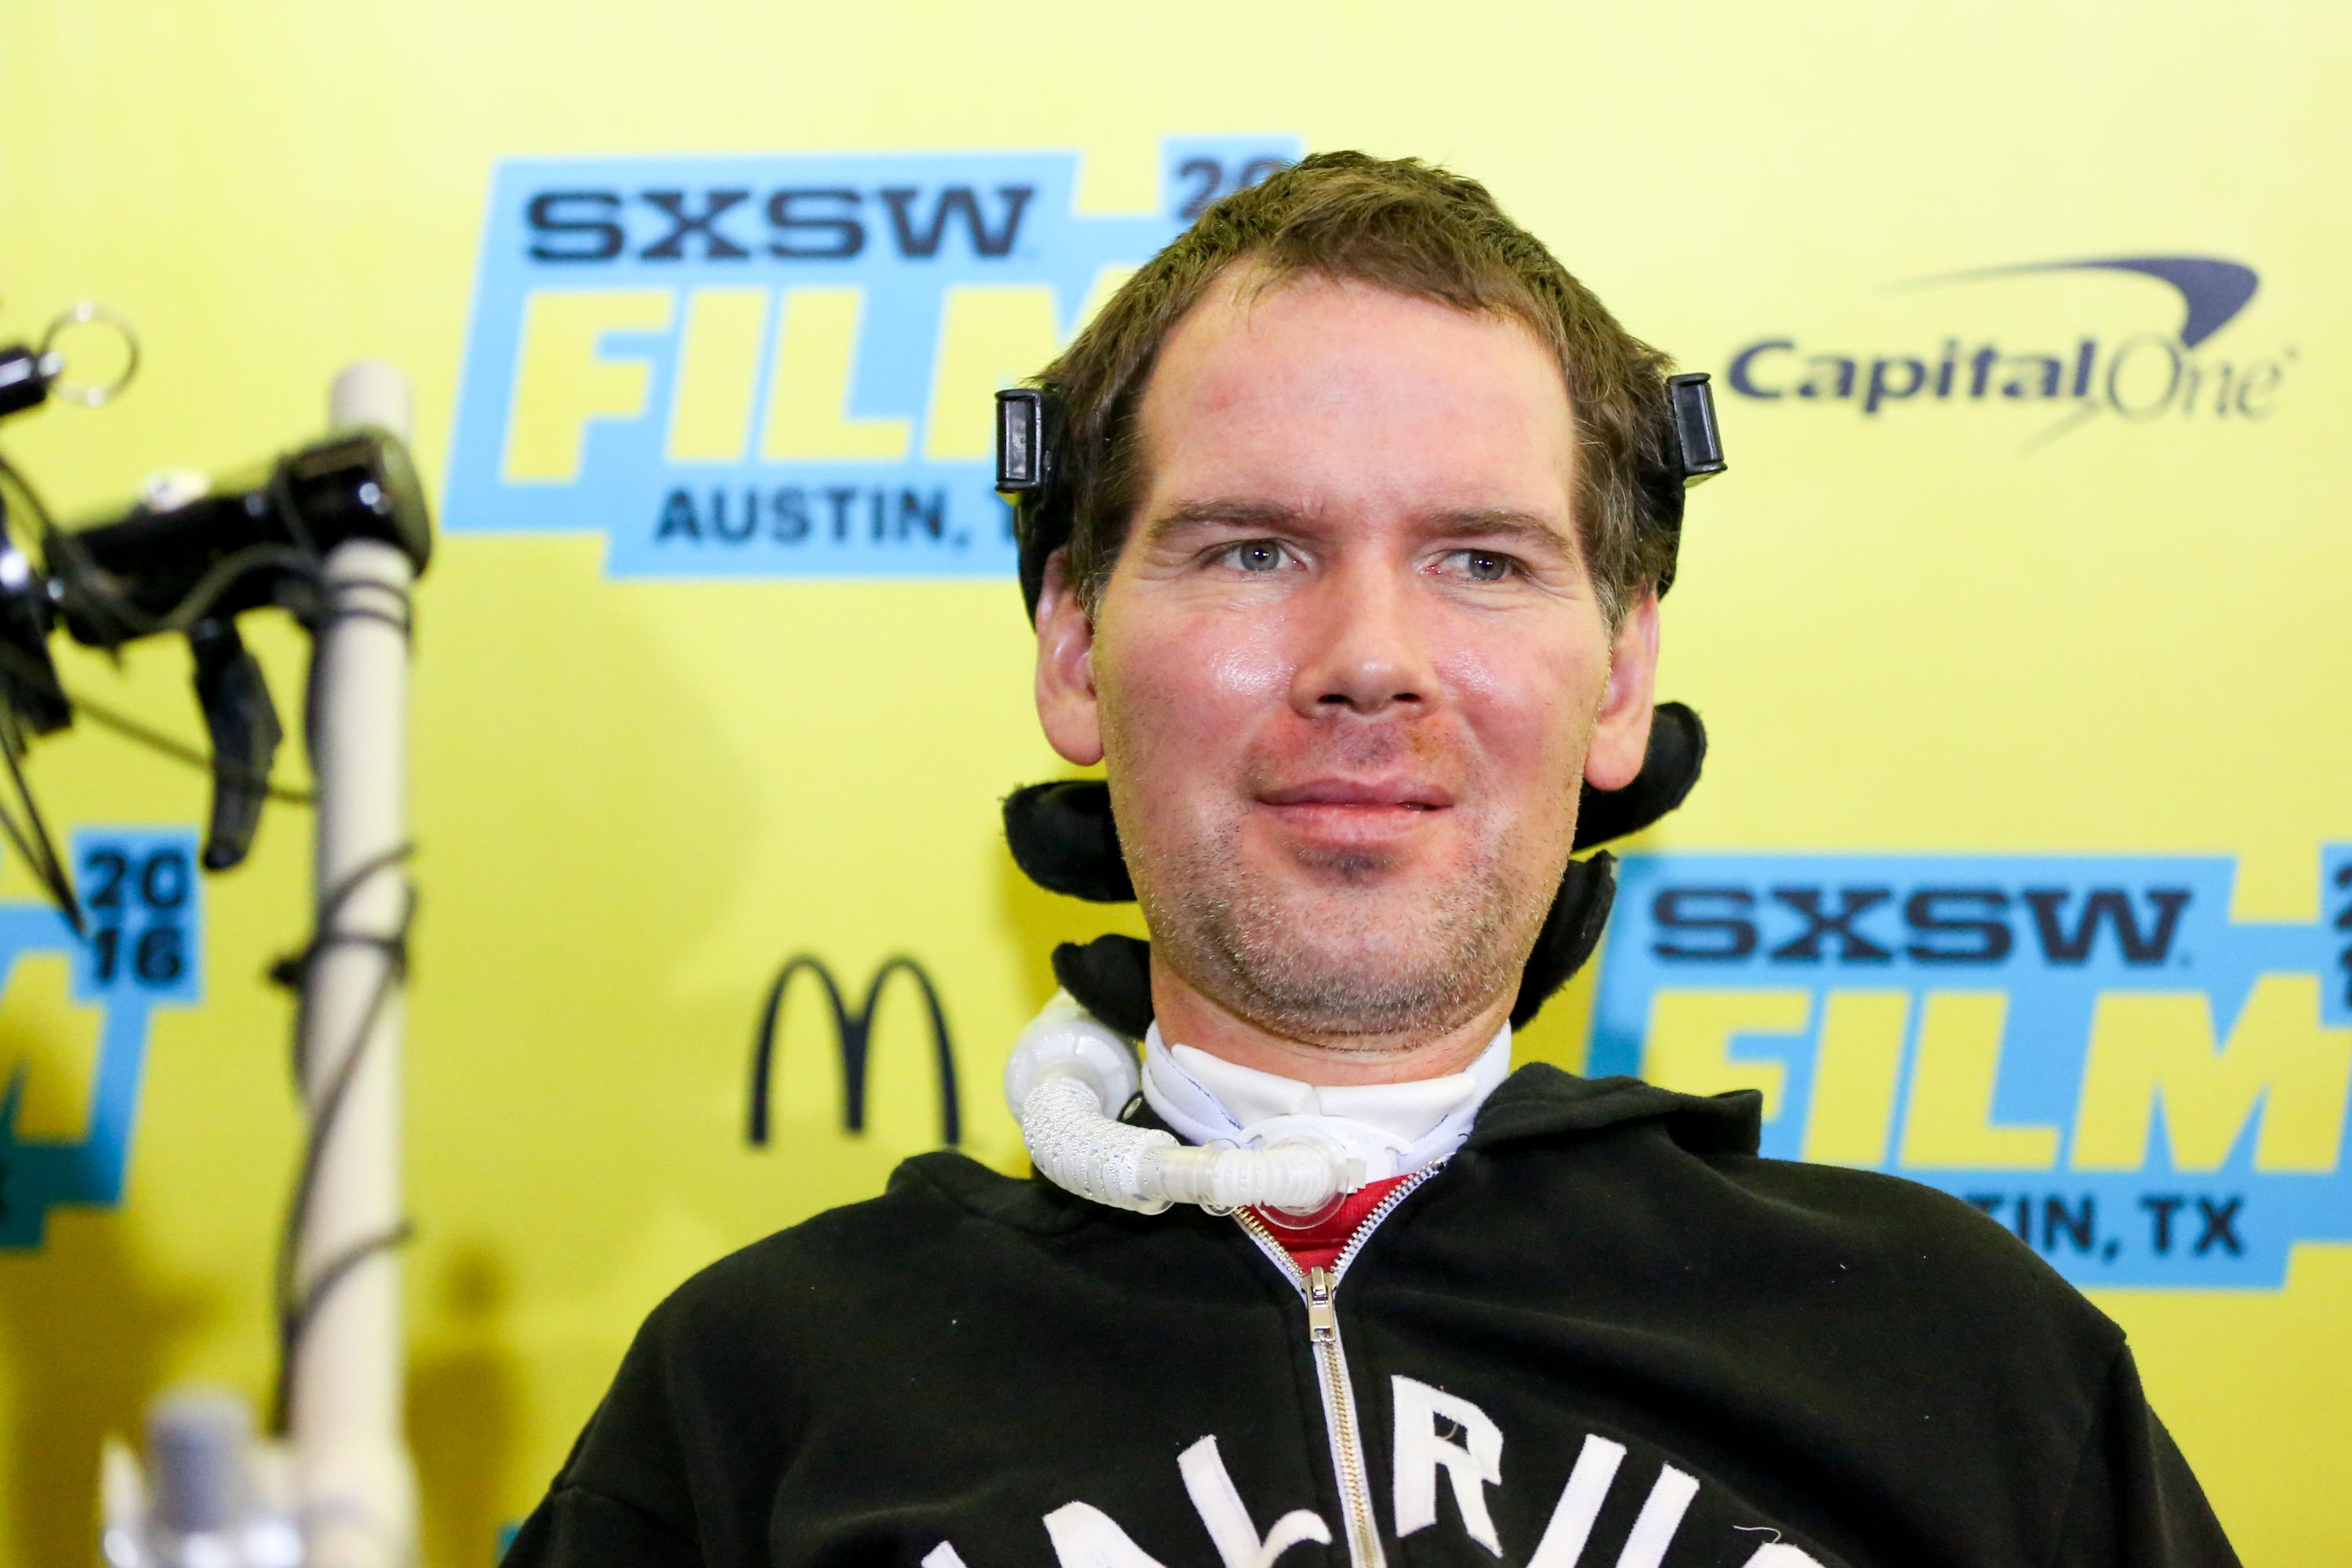 Drew Brees gives emotional speech as Steve Gleason receives Congressional Gold Medal